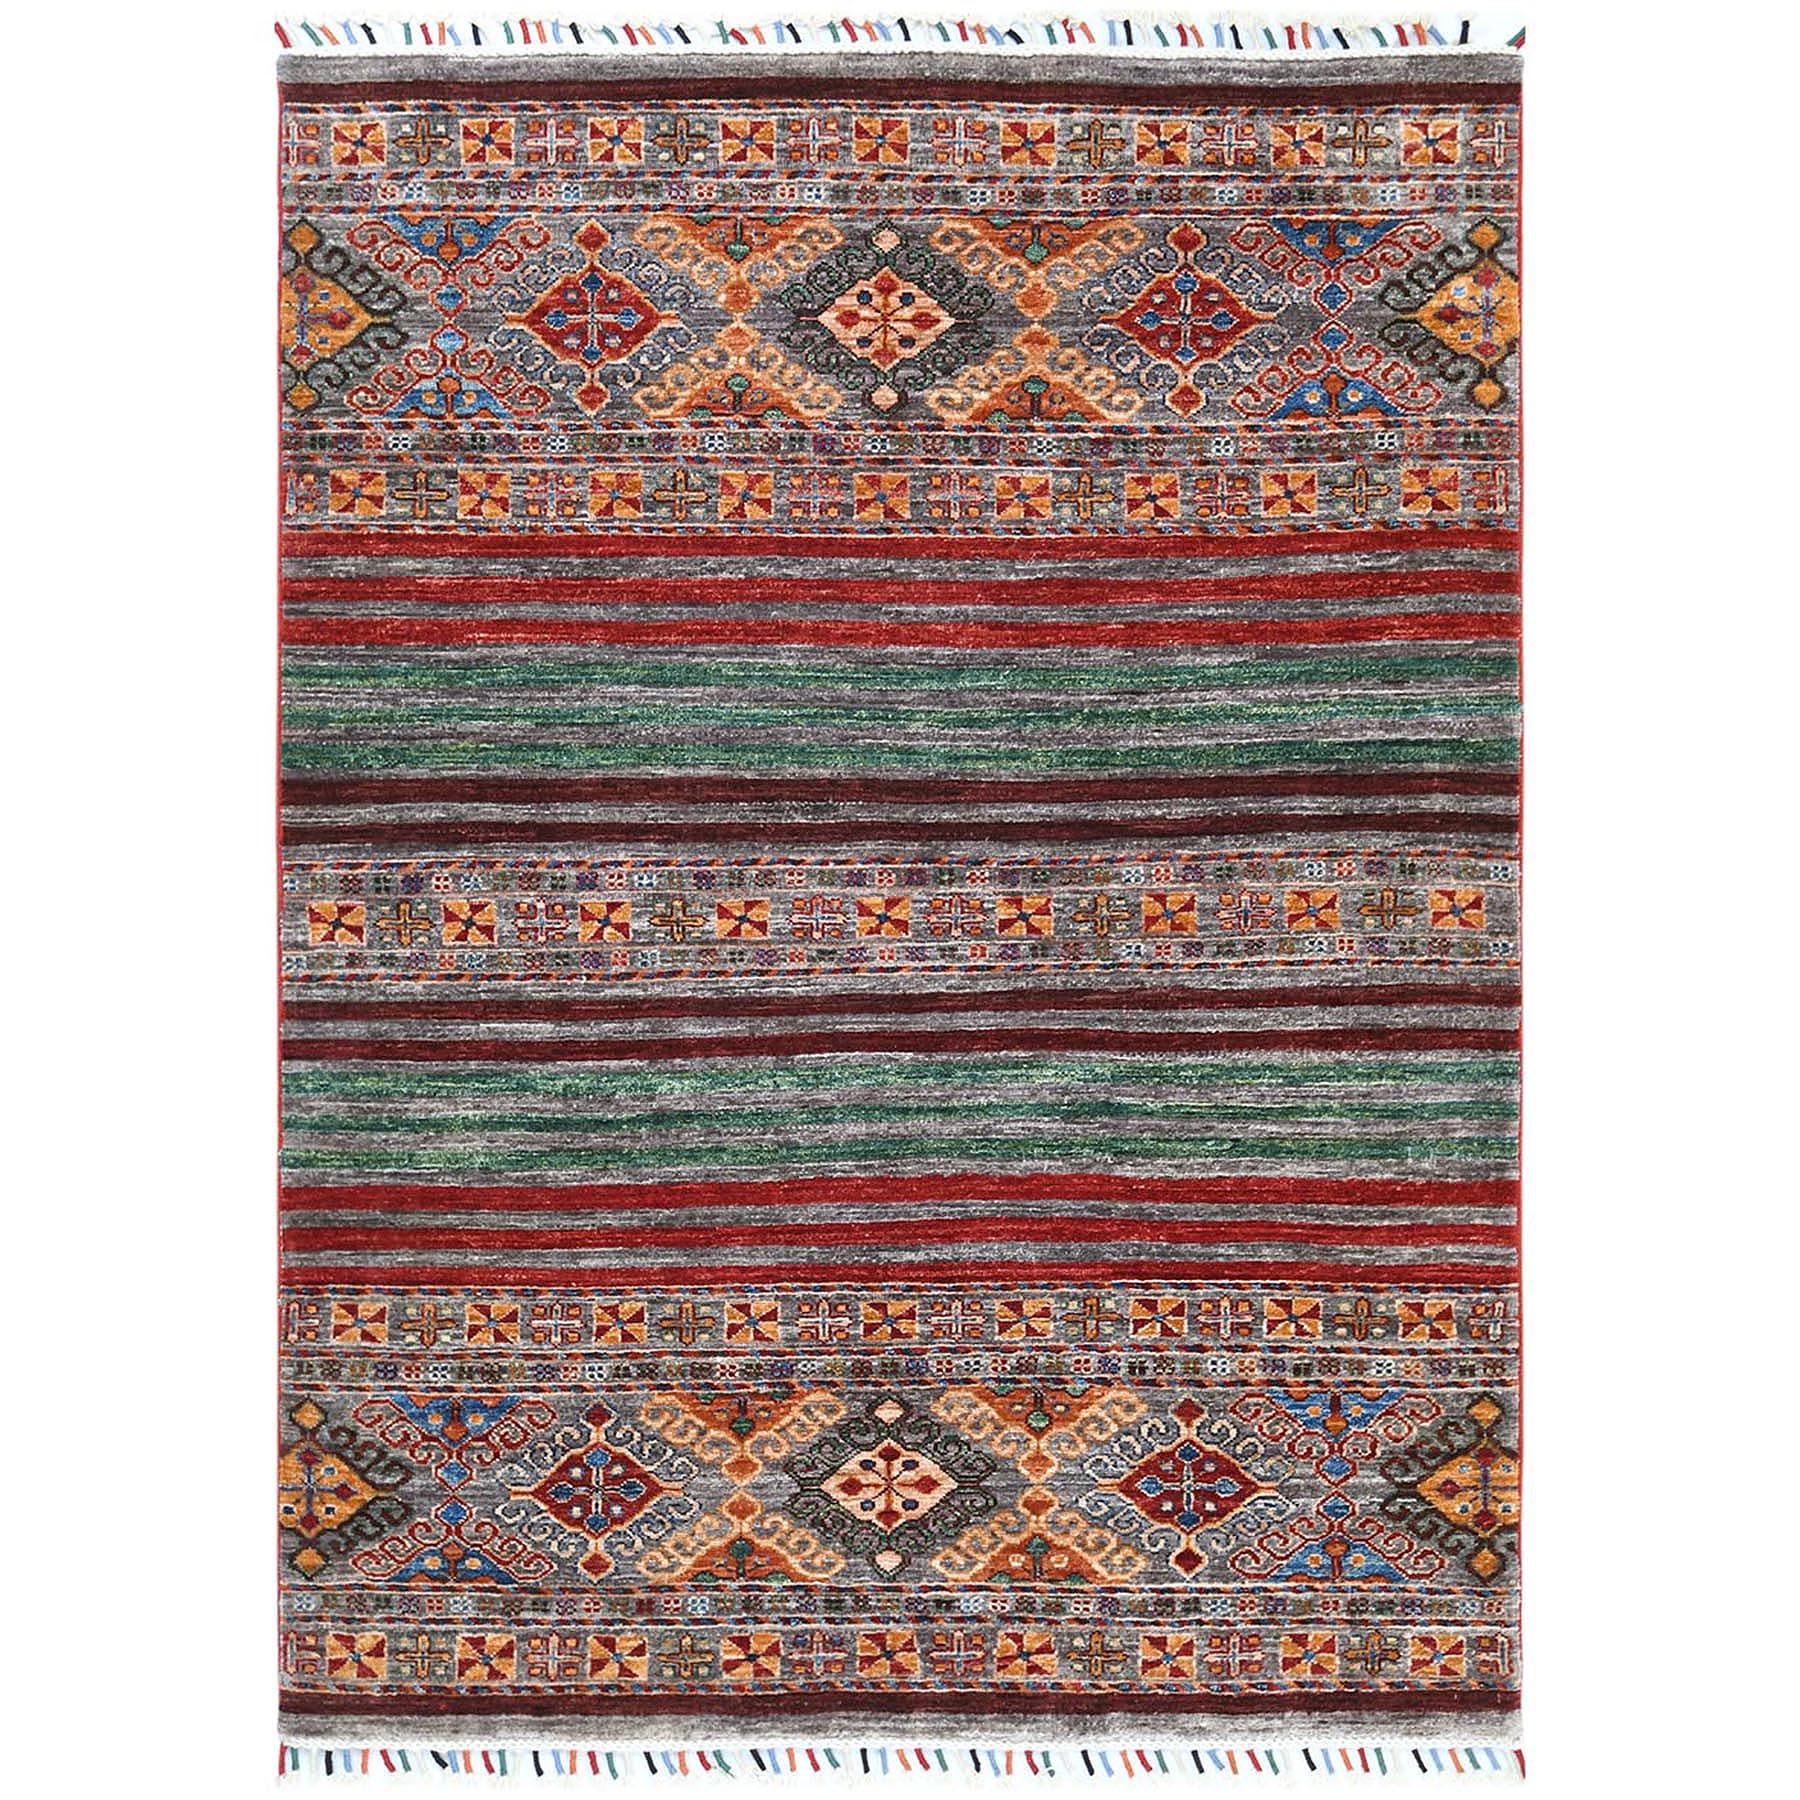 "4'3""x5'9"" Gray Super Kazak Khorjin Design With Colorful Tassles Soft And Supple Wool Hand Knotted Oriental Rug"